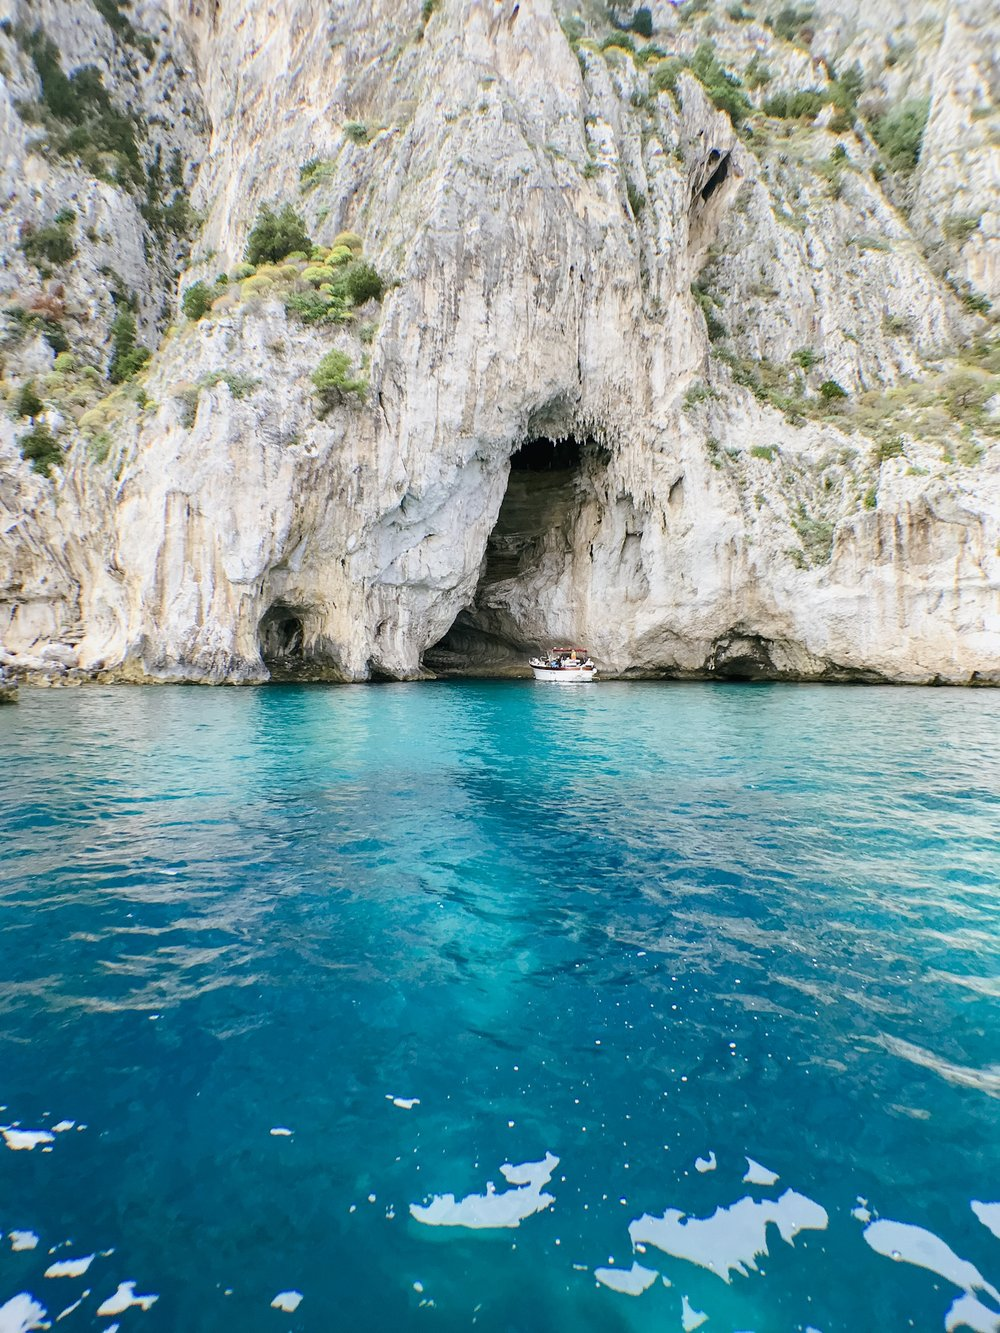 Capri Island Amalfi Coast Boat Tour Grotto Europe Travel